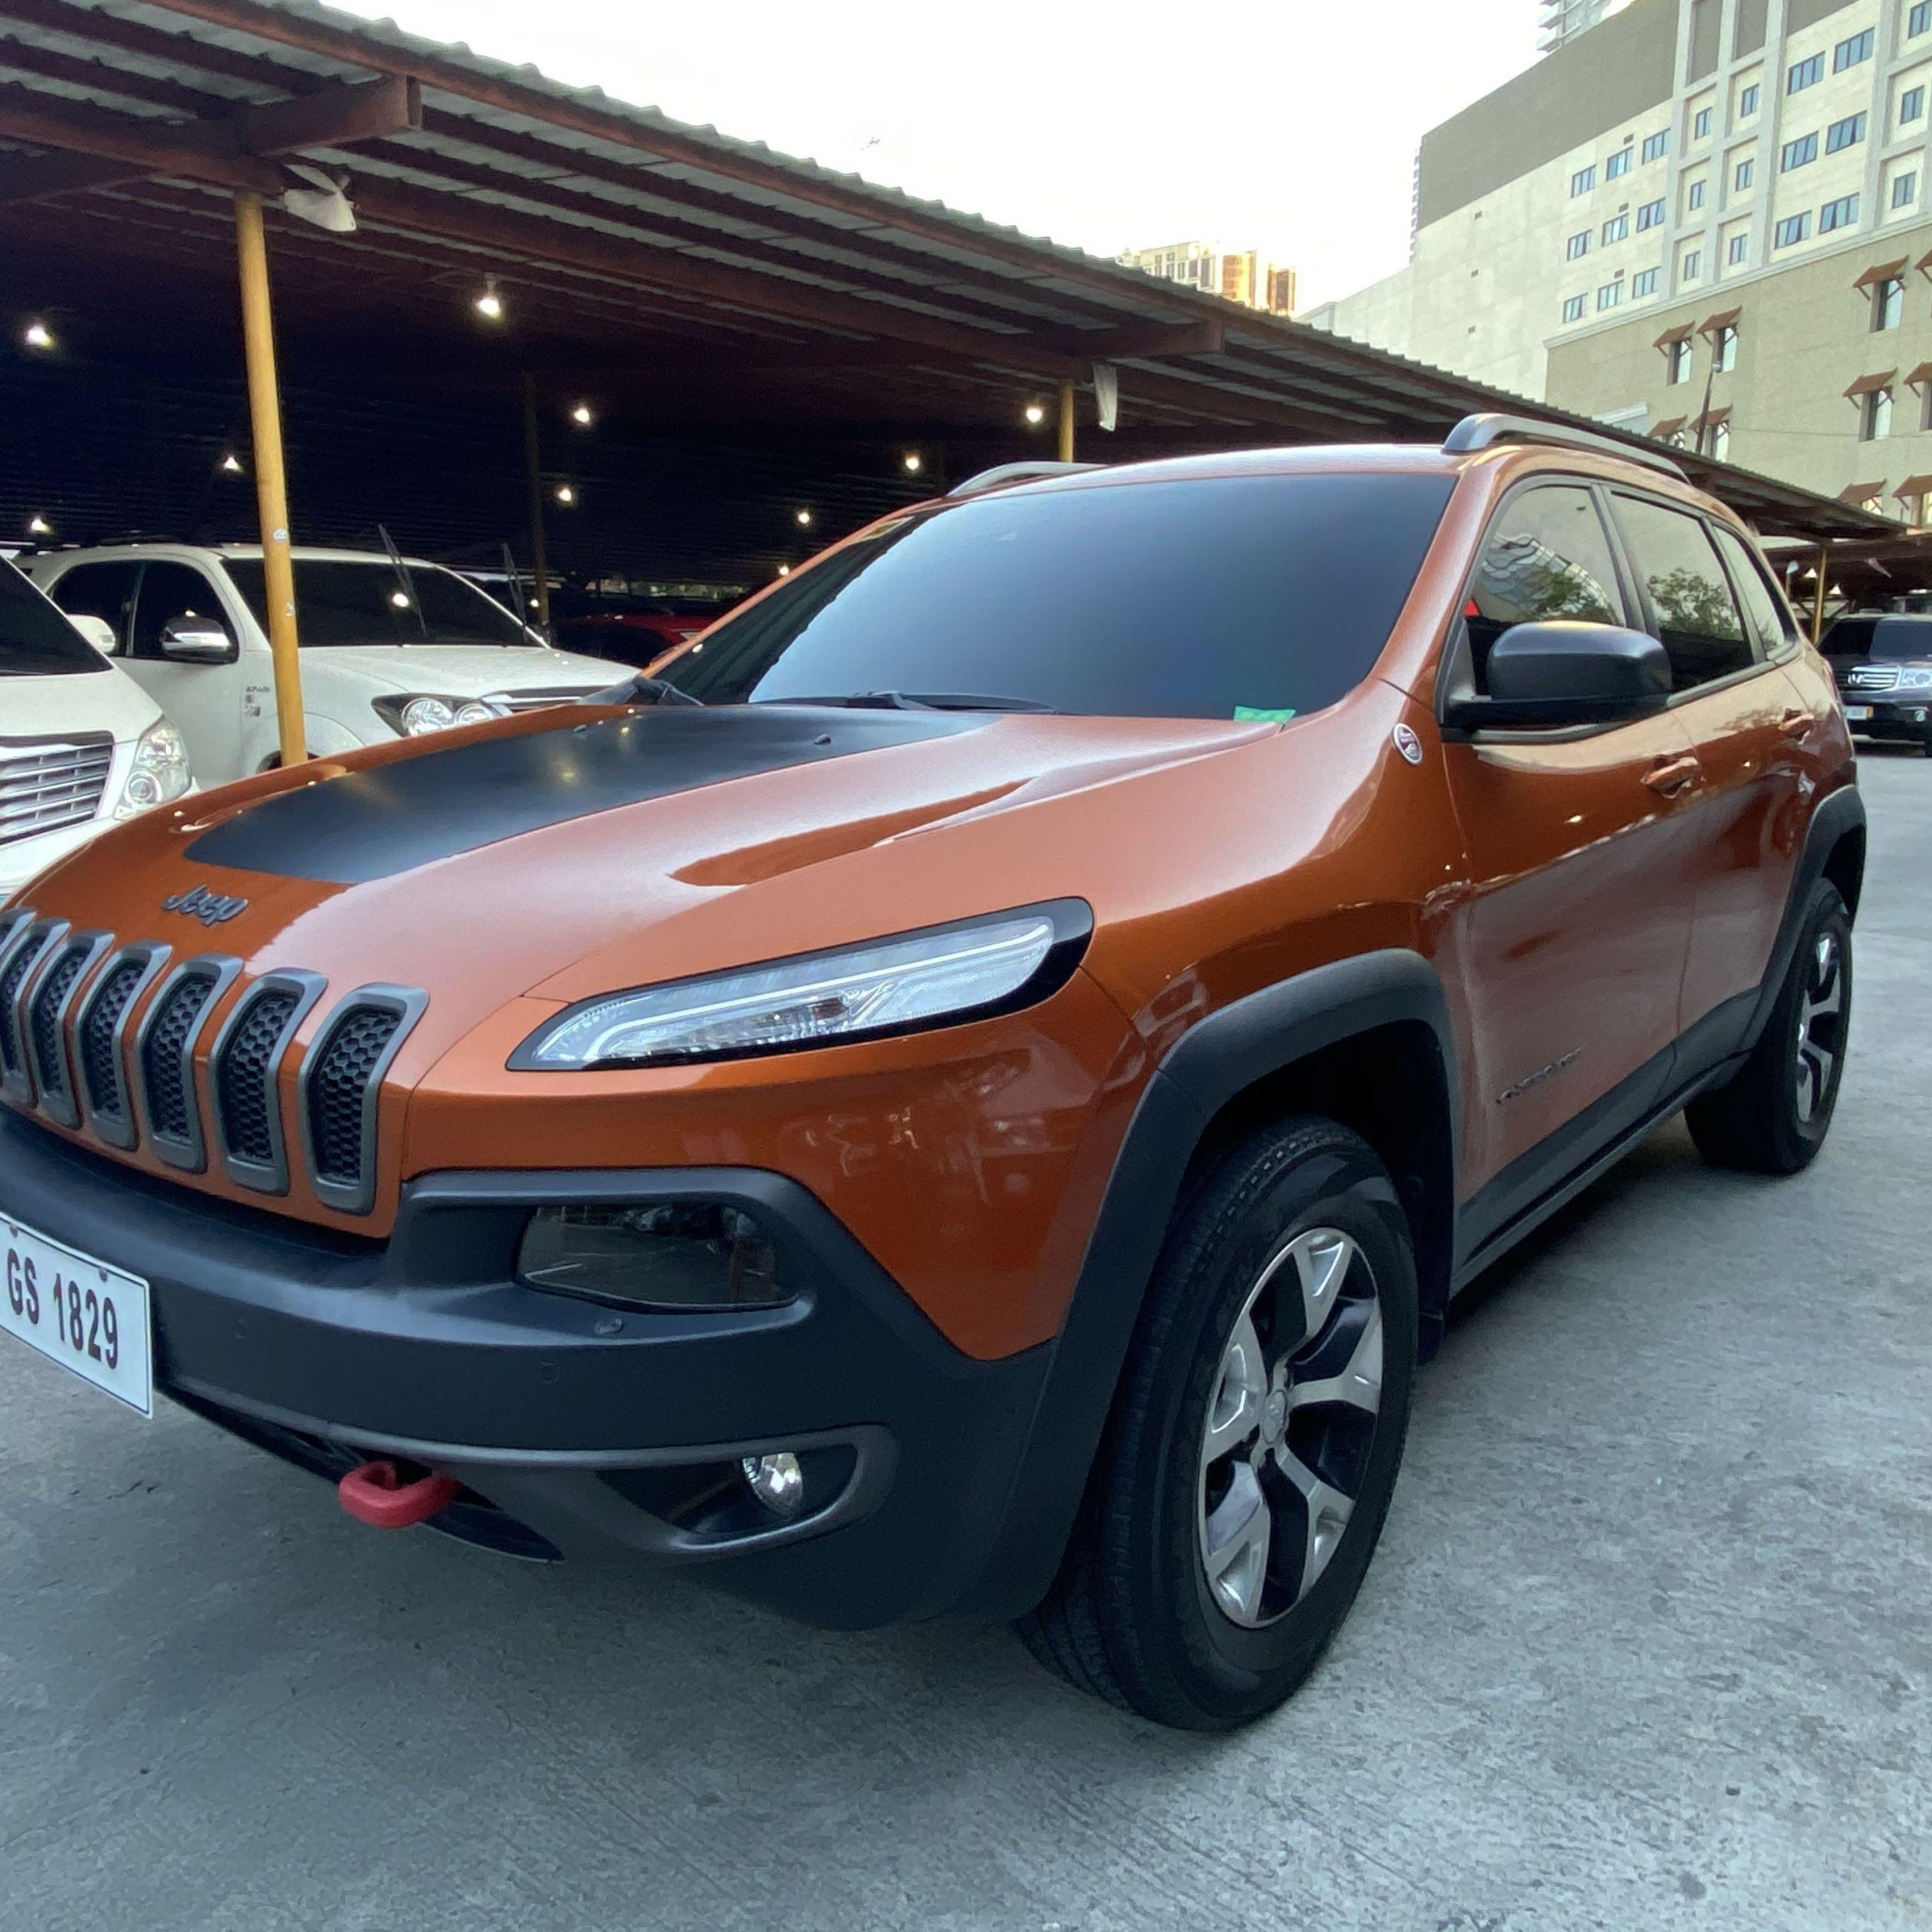 Used Cars for Sale 0 Interest Beautiful Jeep Cherokee Trailhawk Auto Cars for Sale Used Cars On